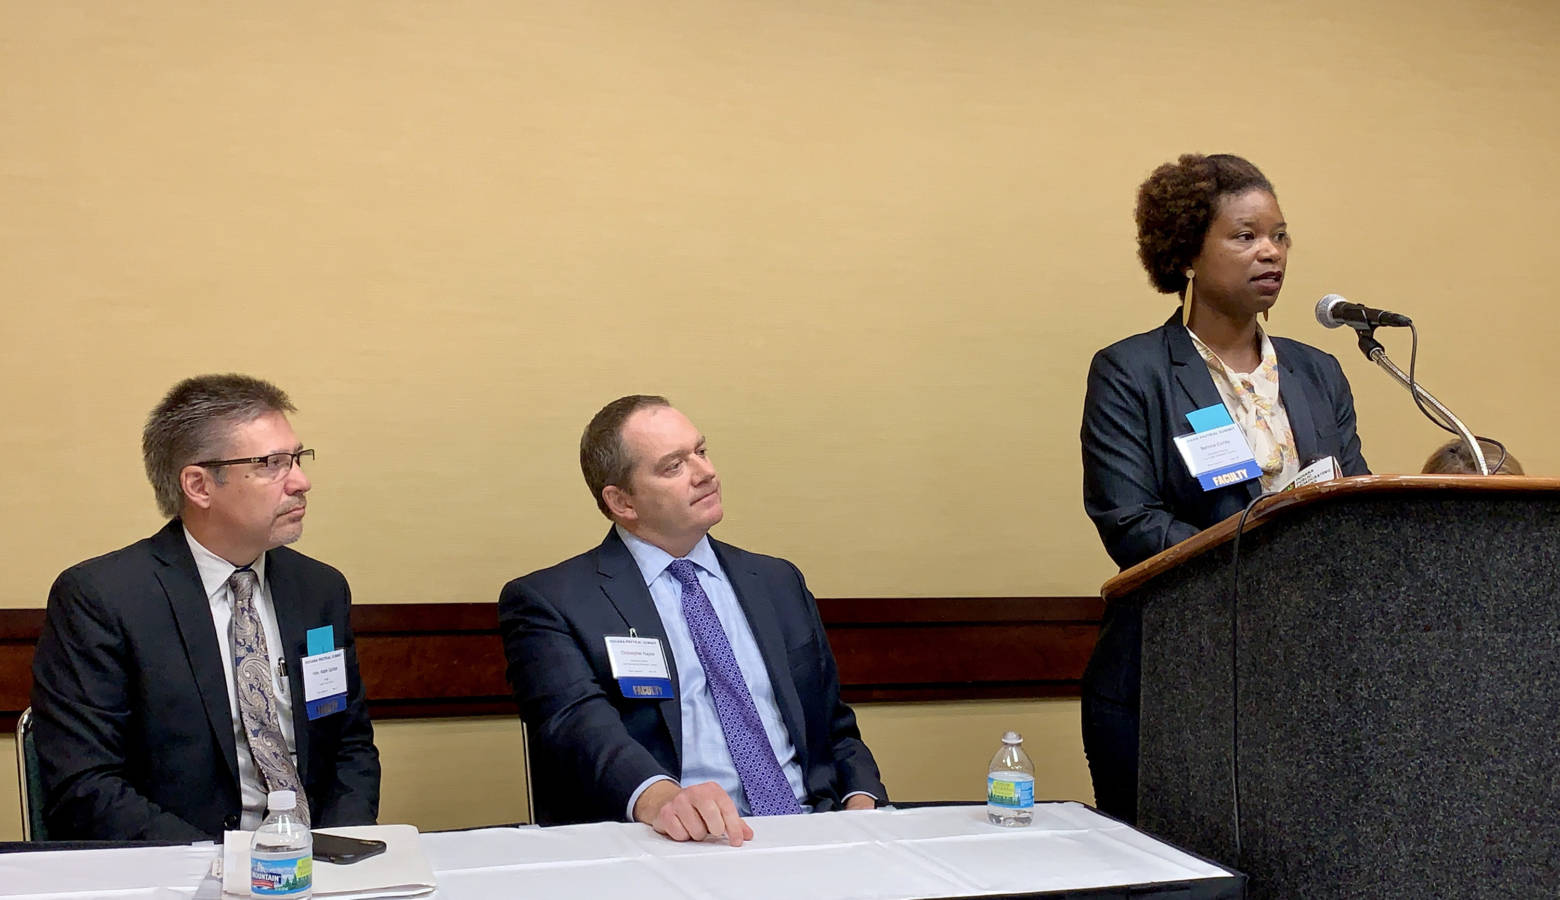 From left, Grant County Judge Mark Spitzer, Indiana Prosecuting Attorneys Council Executive Director Chris Naylor, and Indiana Public Defender Council Executive Director Bernice Corley. (Brandon Smith/IPB News)